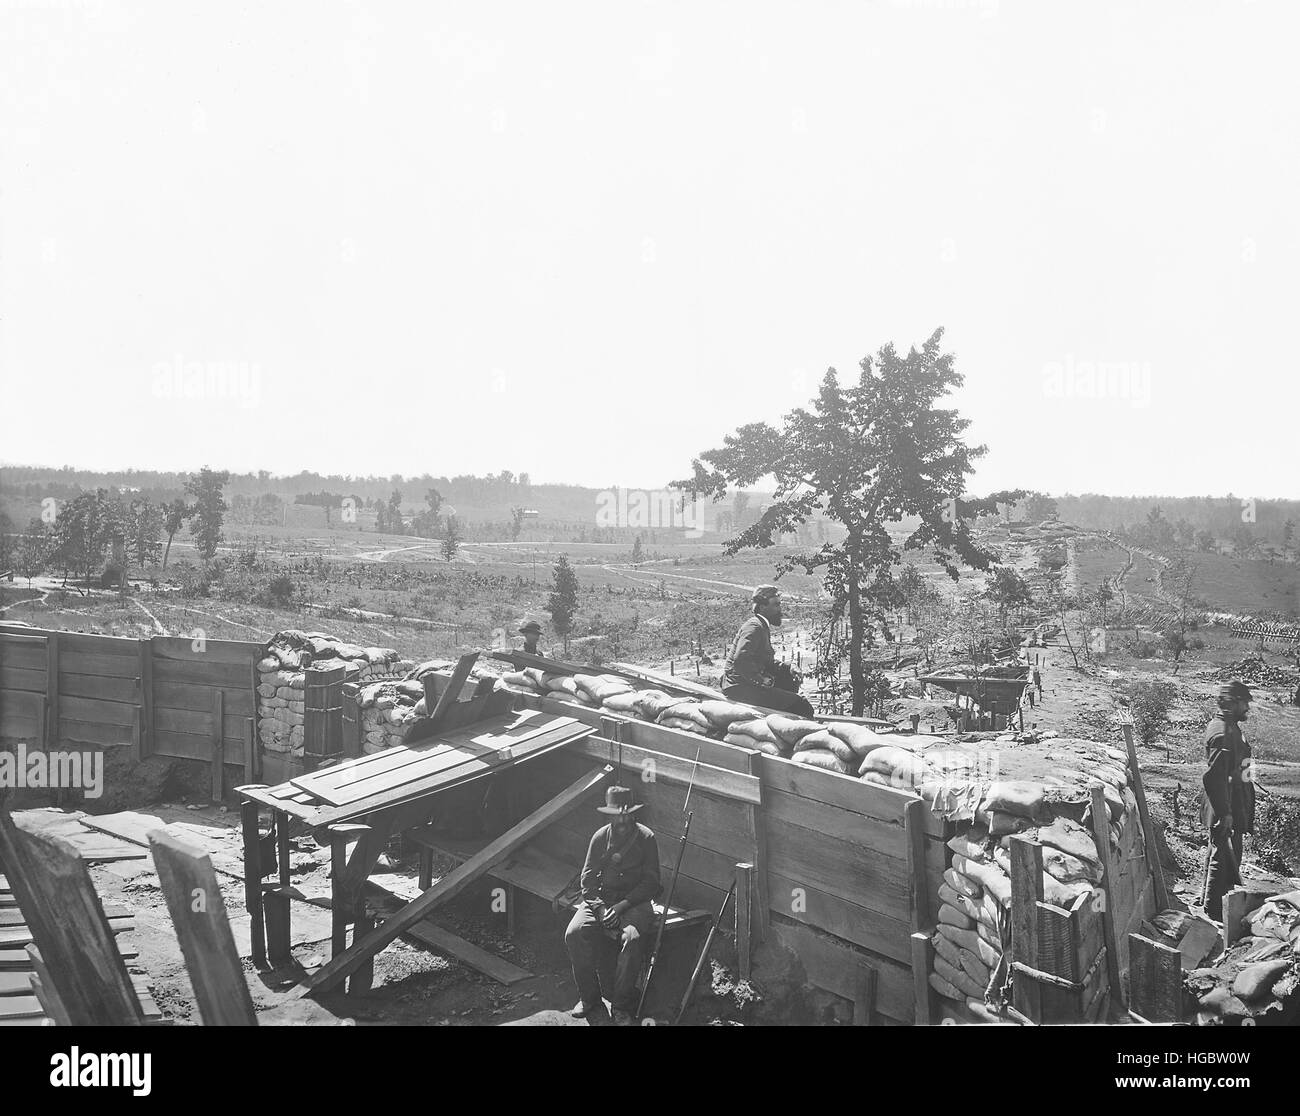 Fortifications in front of Atlanta, Georgia, during the American Civil War. - Stock Image